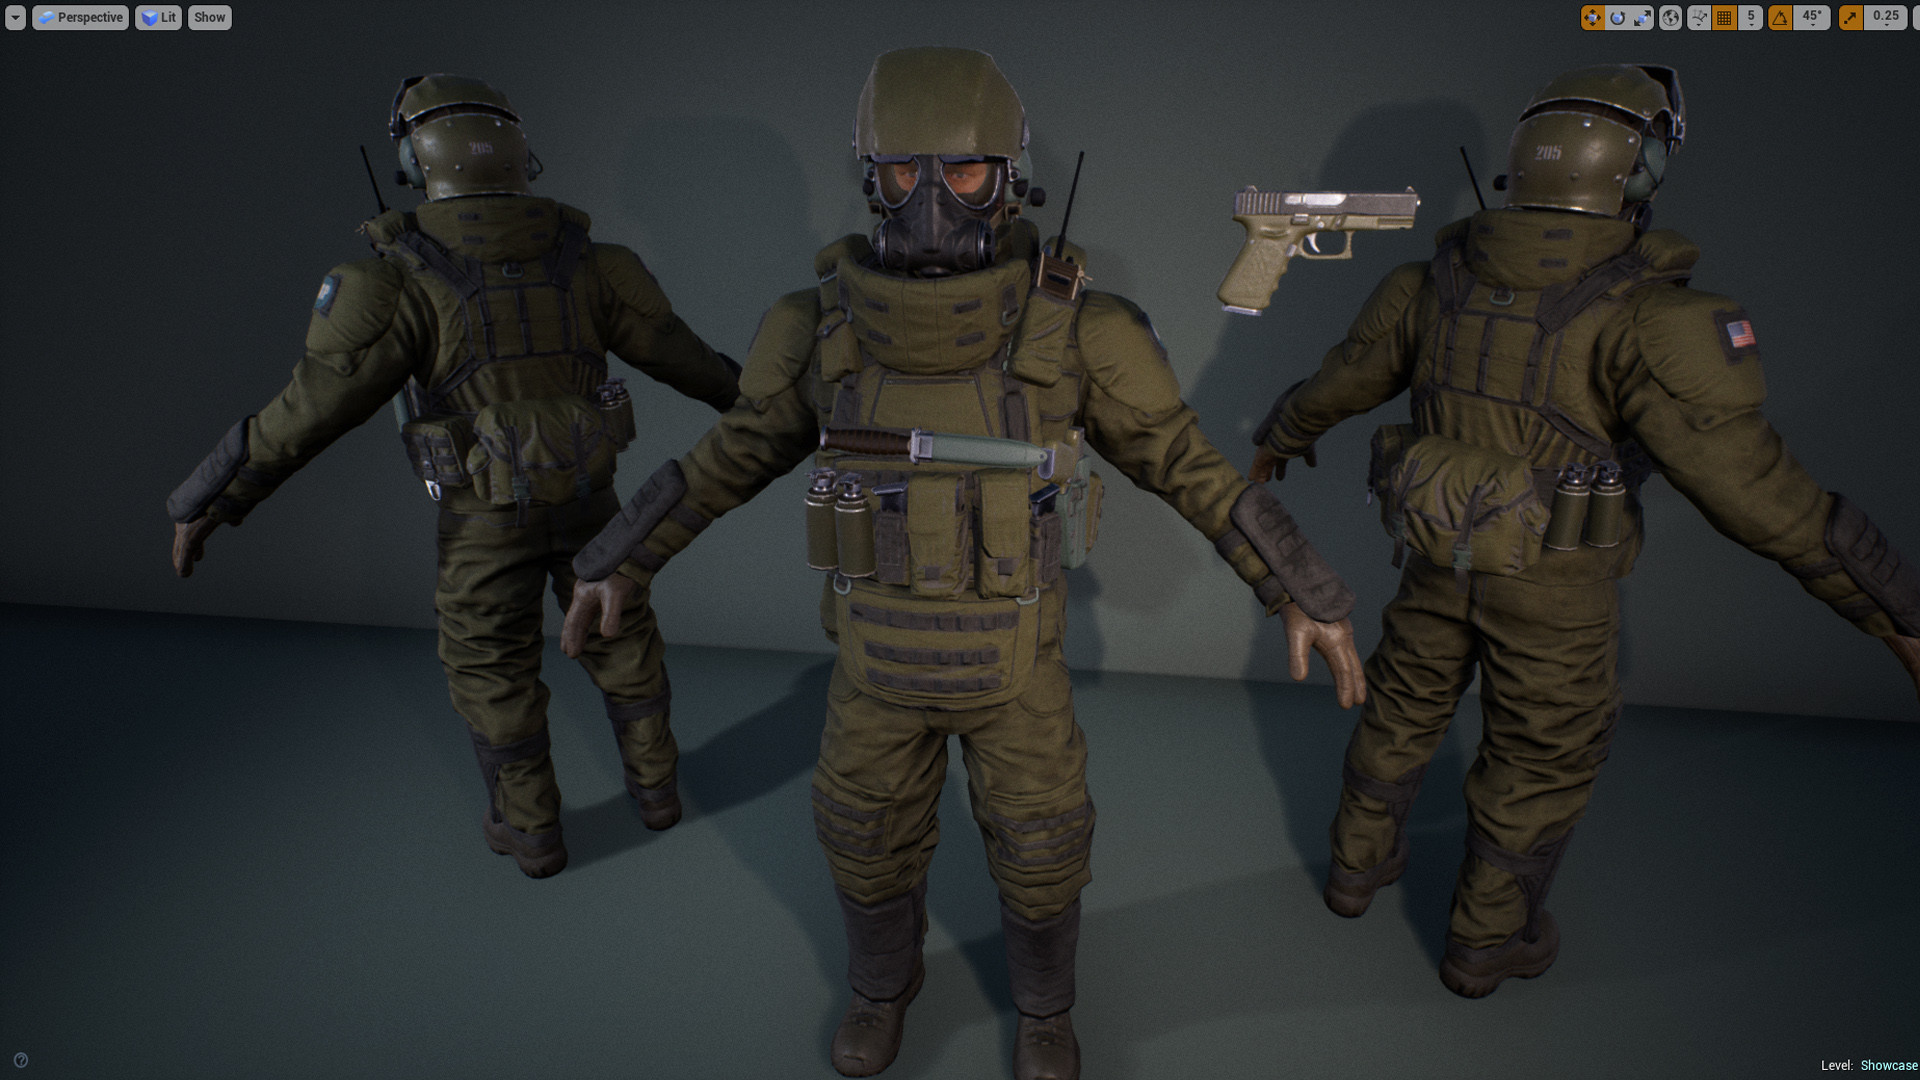 ArtStation - Heavy G soldier and Free Pistol Asset, Alex Ponomarev